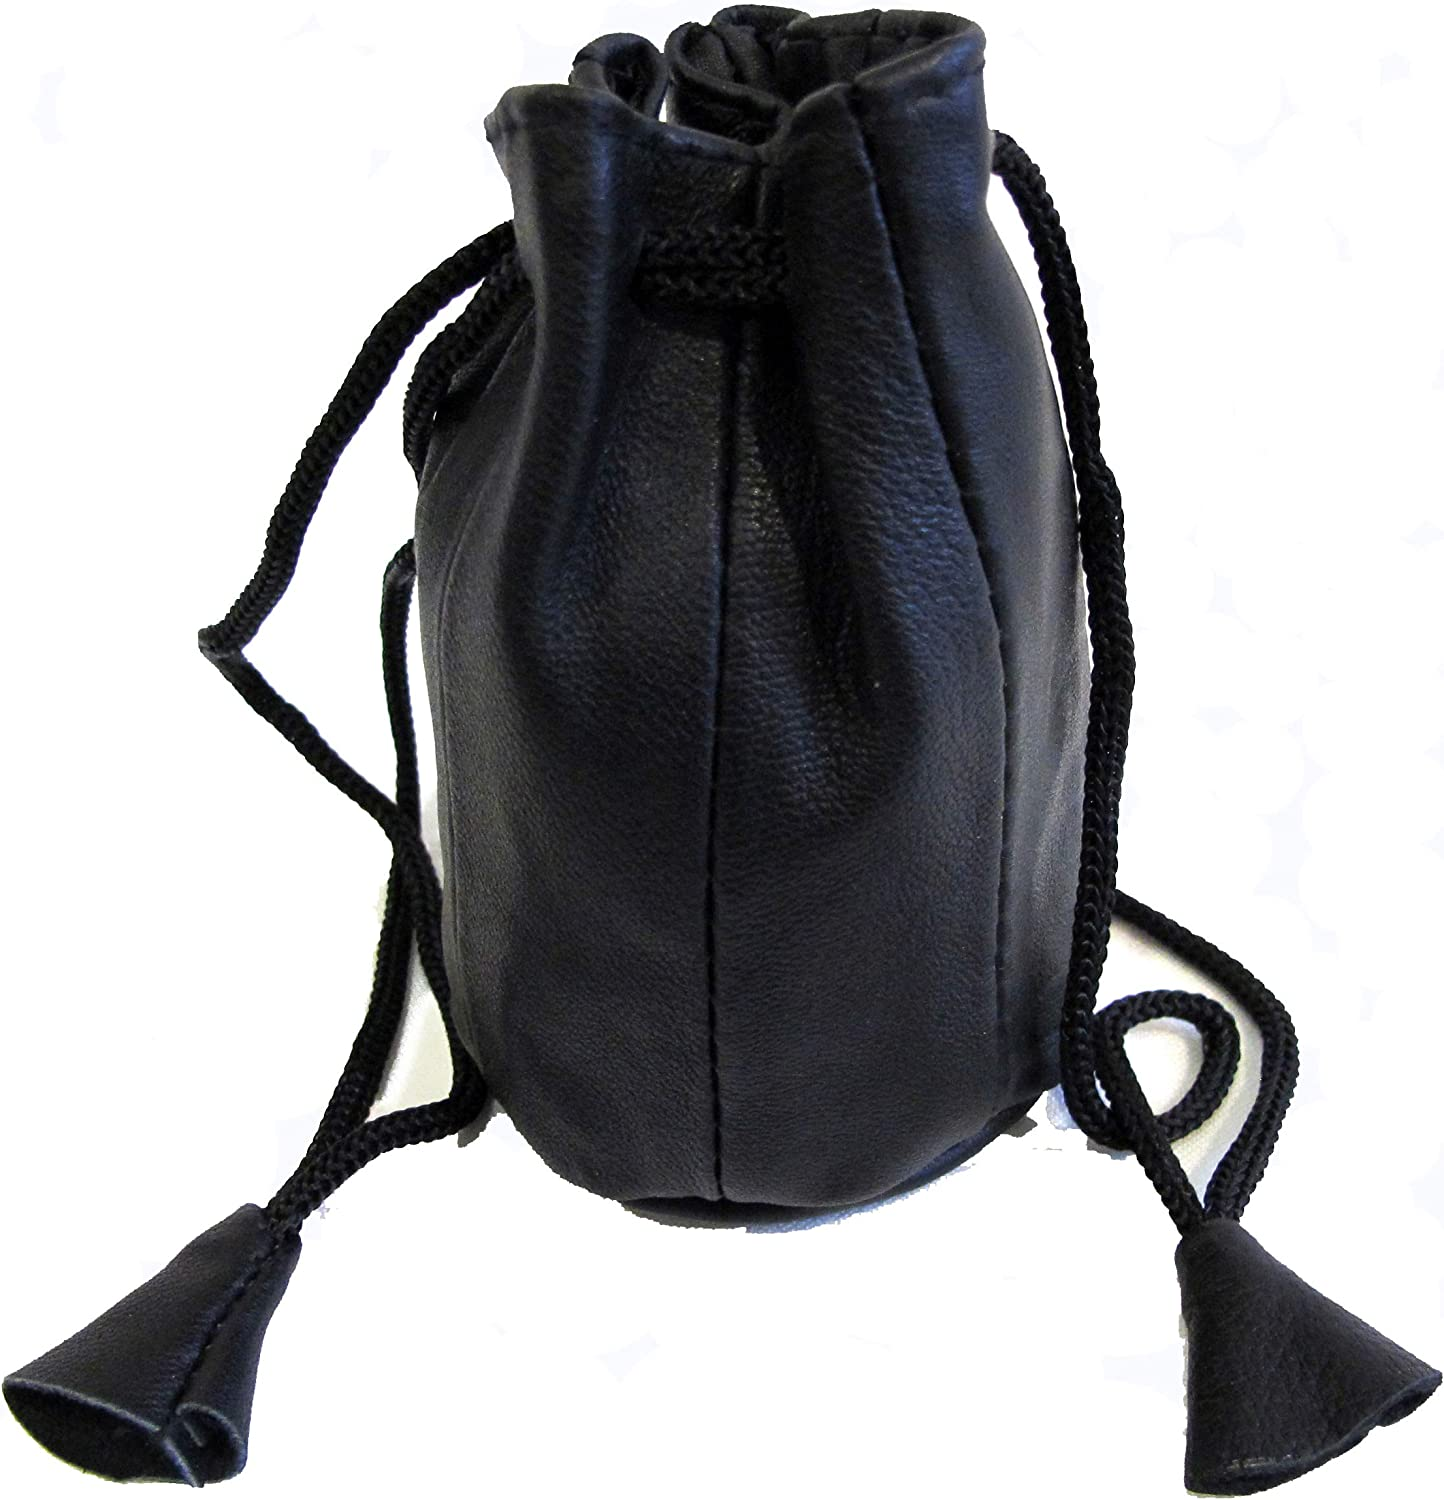 2pc Lot Soft Lambskin Leather Coin Bags Drawstring Closure Black Color $7.99